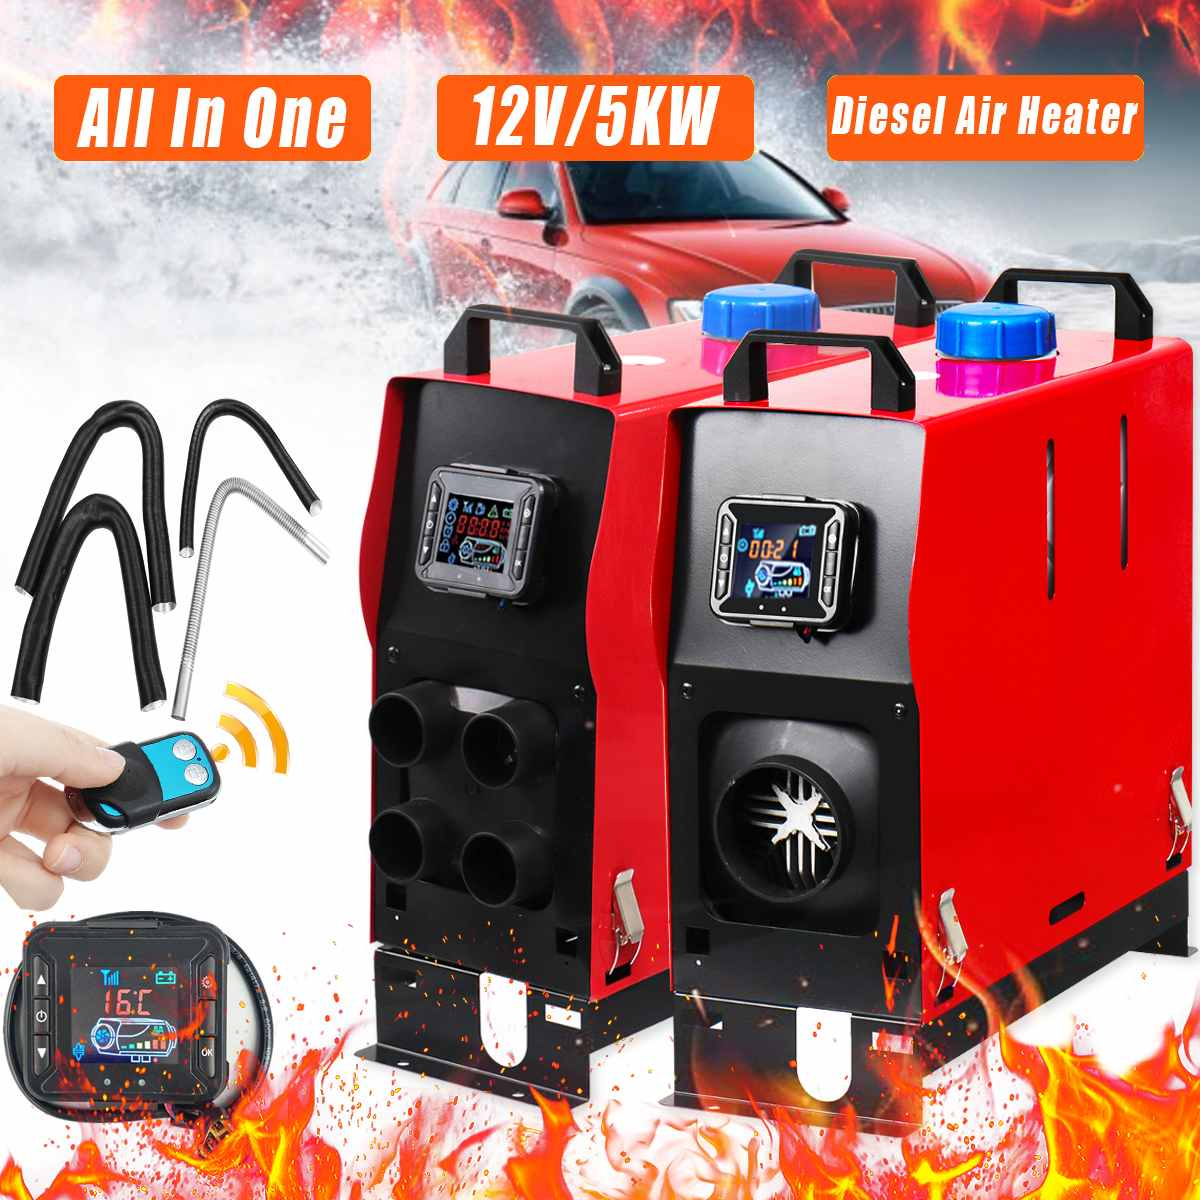 All In One 12V 5KW Diesel Air Heater LCD Monitor PLANAR For Trucks Boats Bus Car